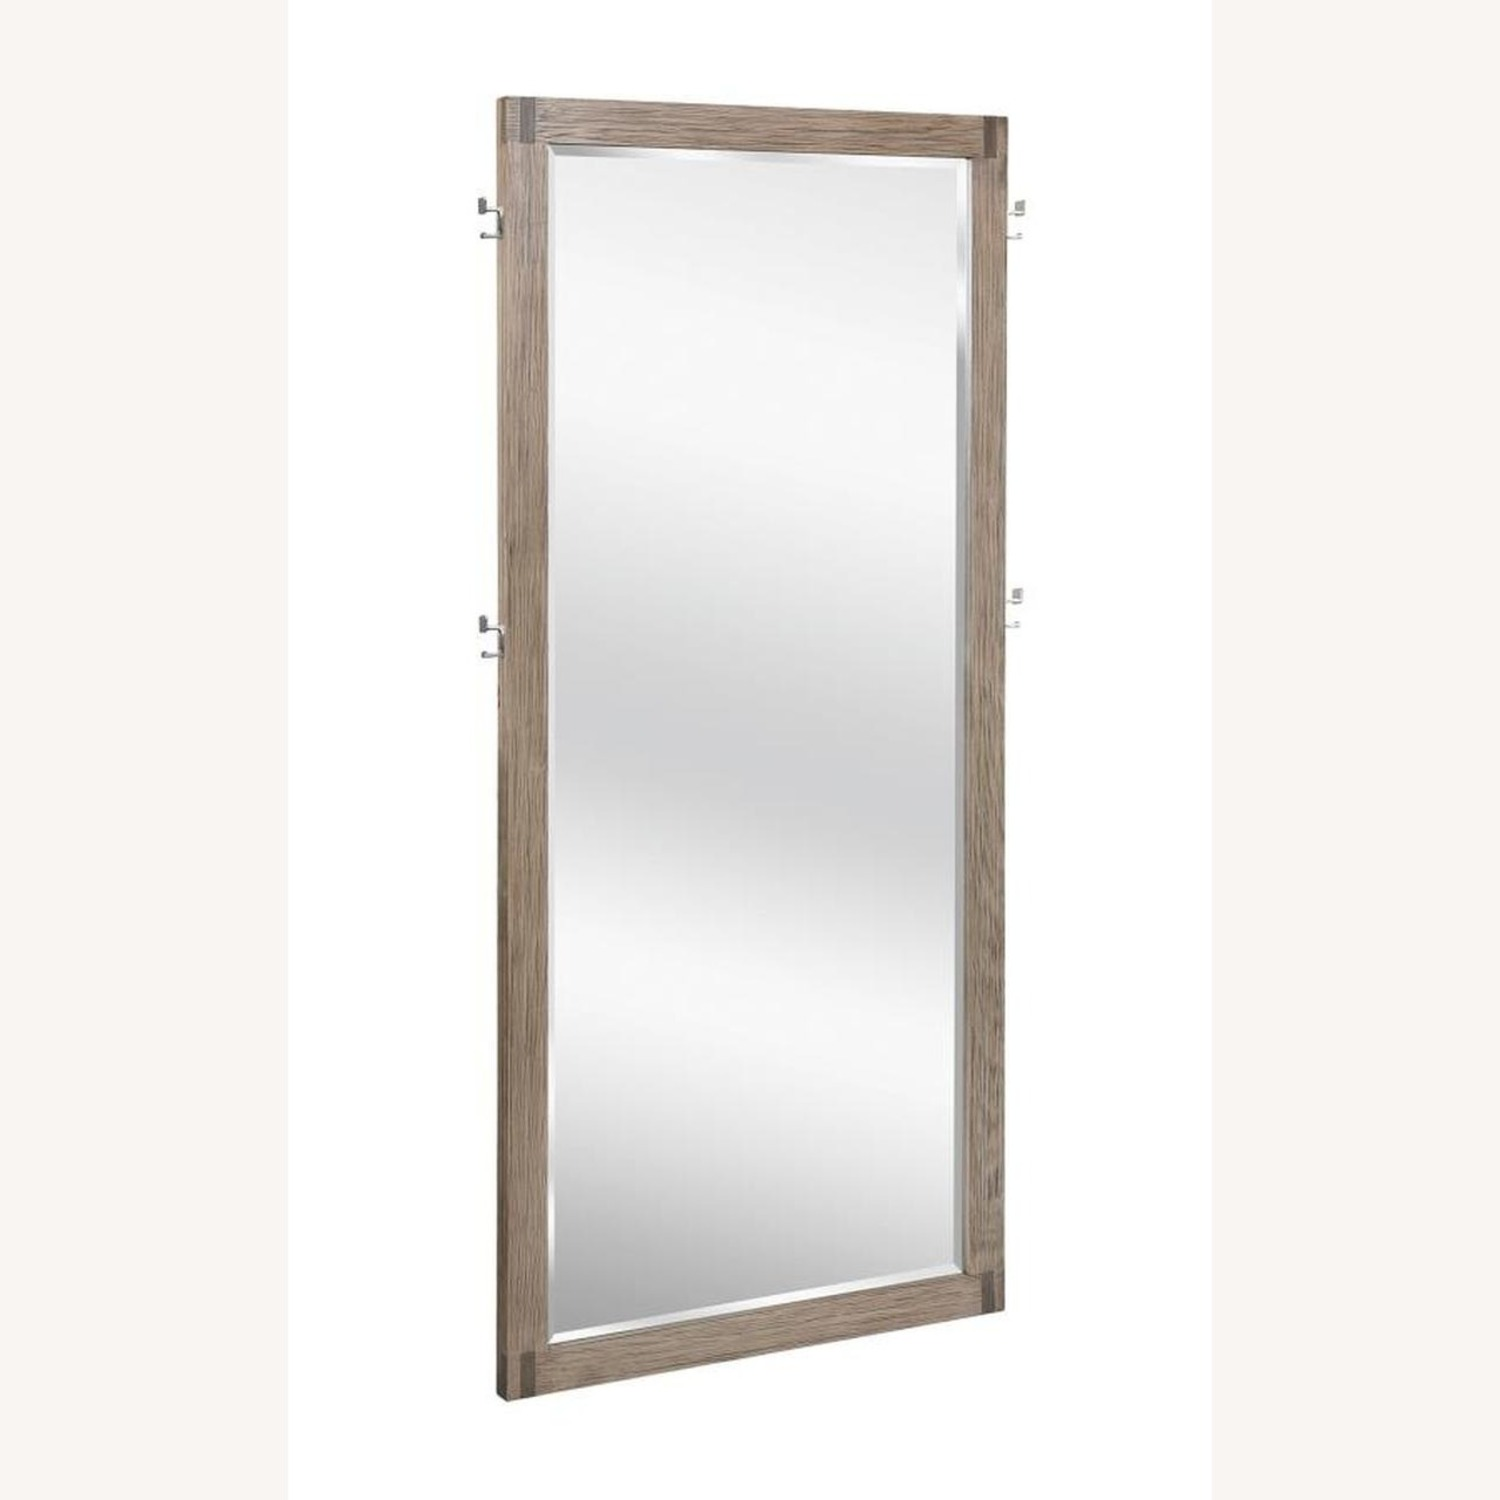 Modern Floor Mirror in Grey Oak Frame W/ Hooks - image-0